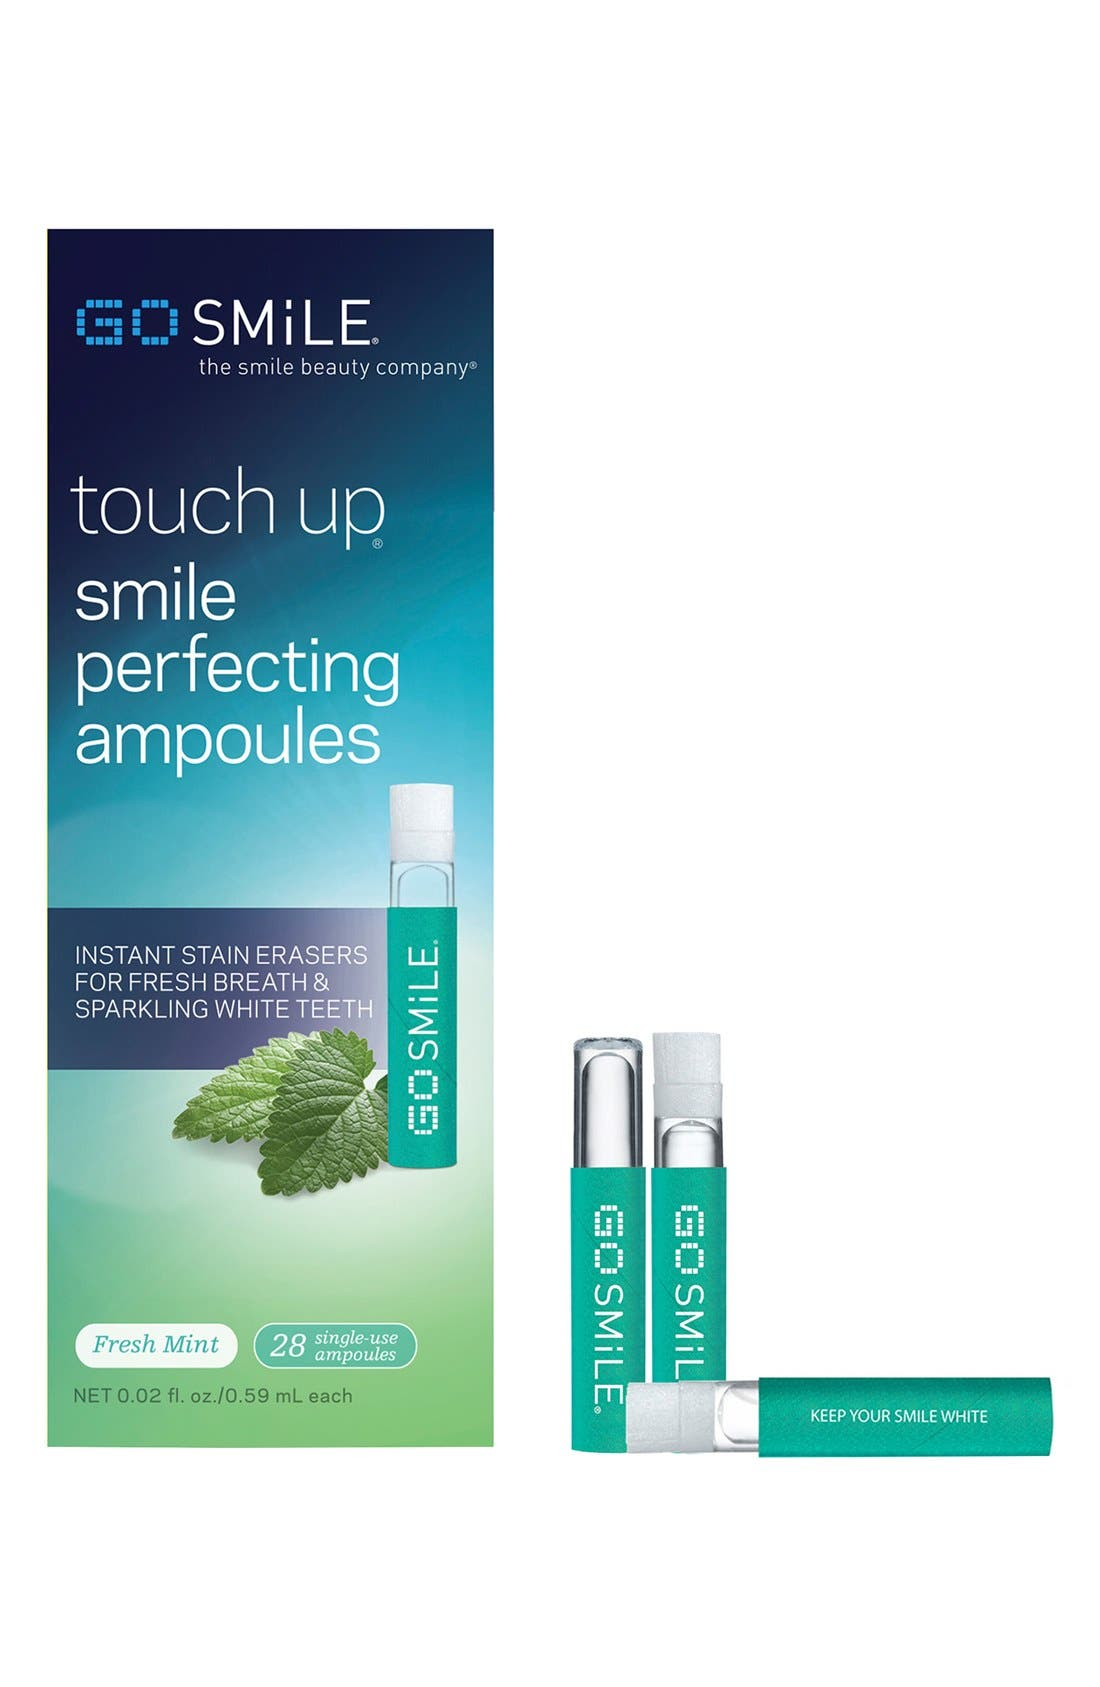 GO SMiLE® 'Touch Up - Fresh Mint' Smile Perfecting Ampoules